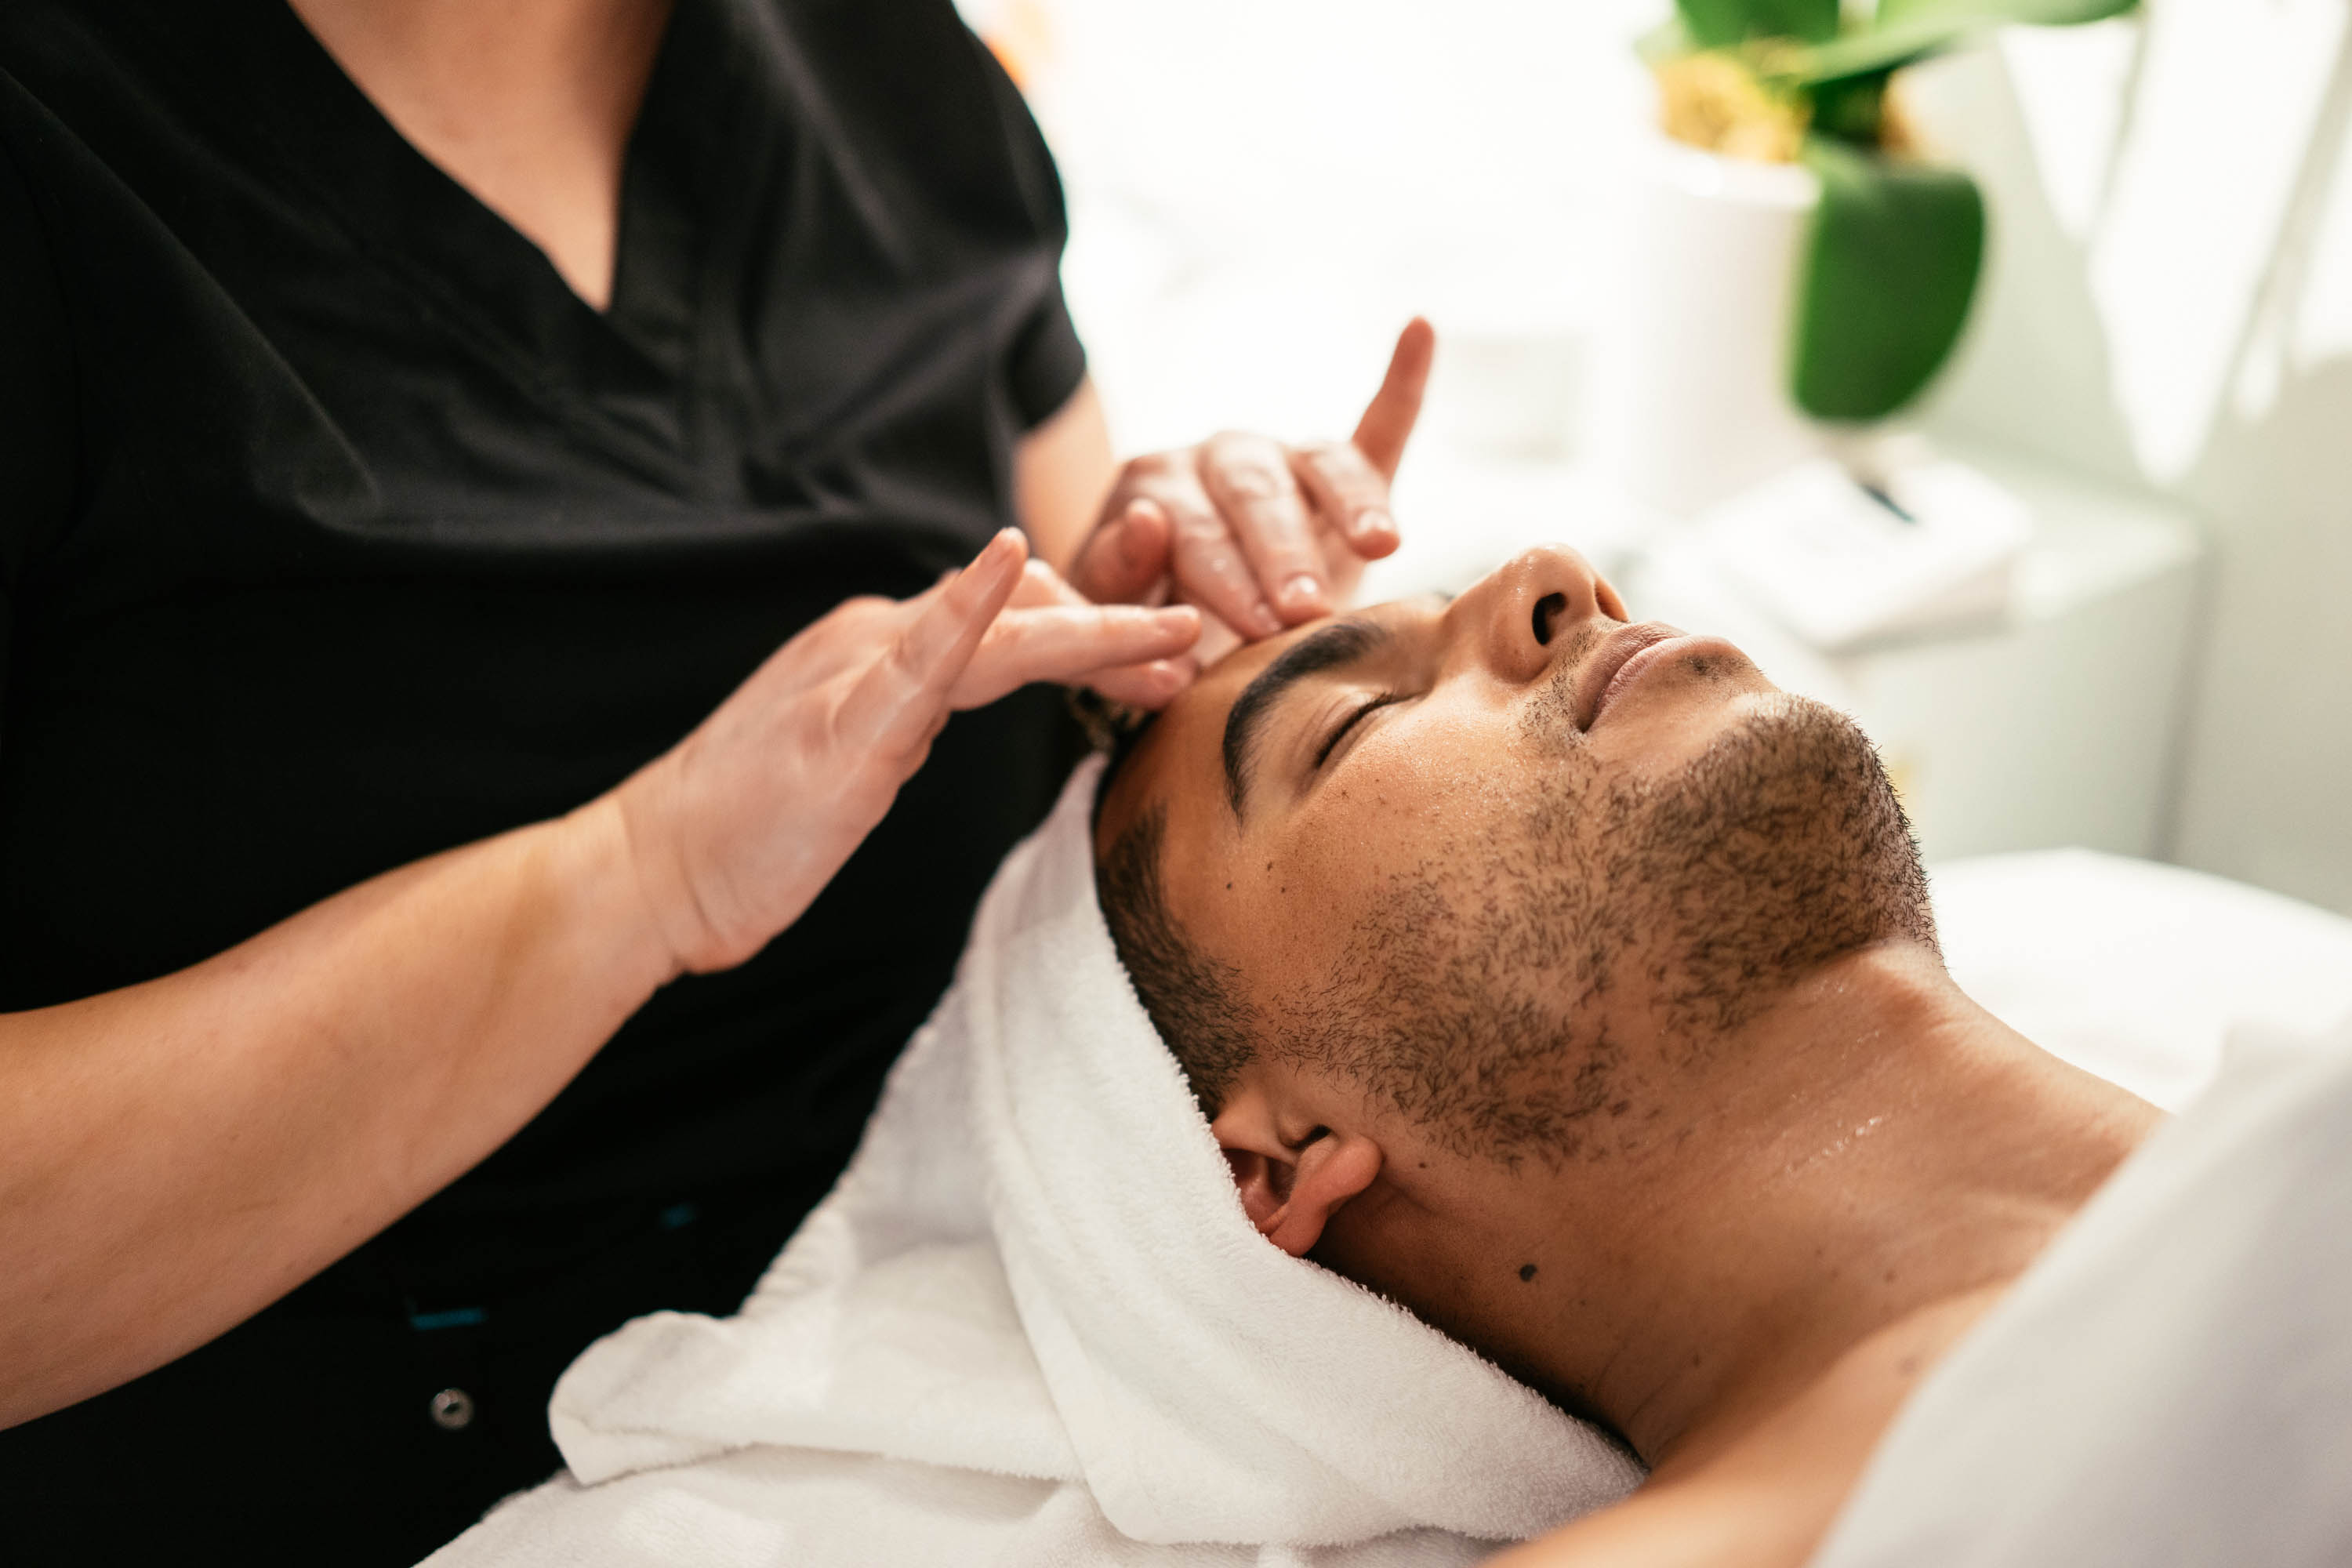 Both men and women can be found indulging in treatments at the Bluemercury Spa.